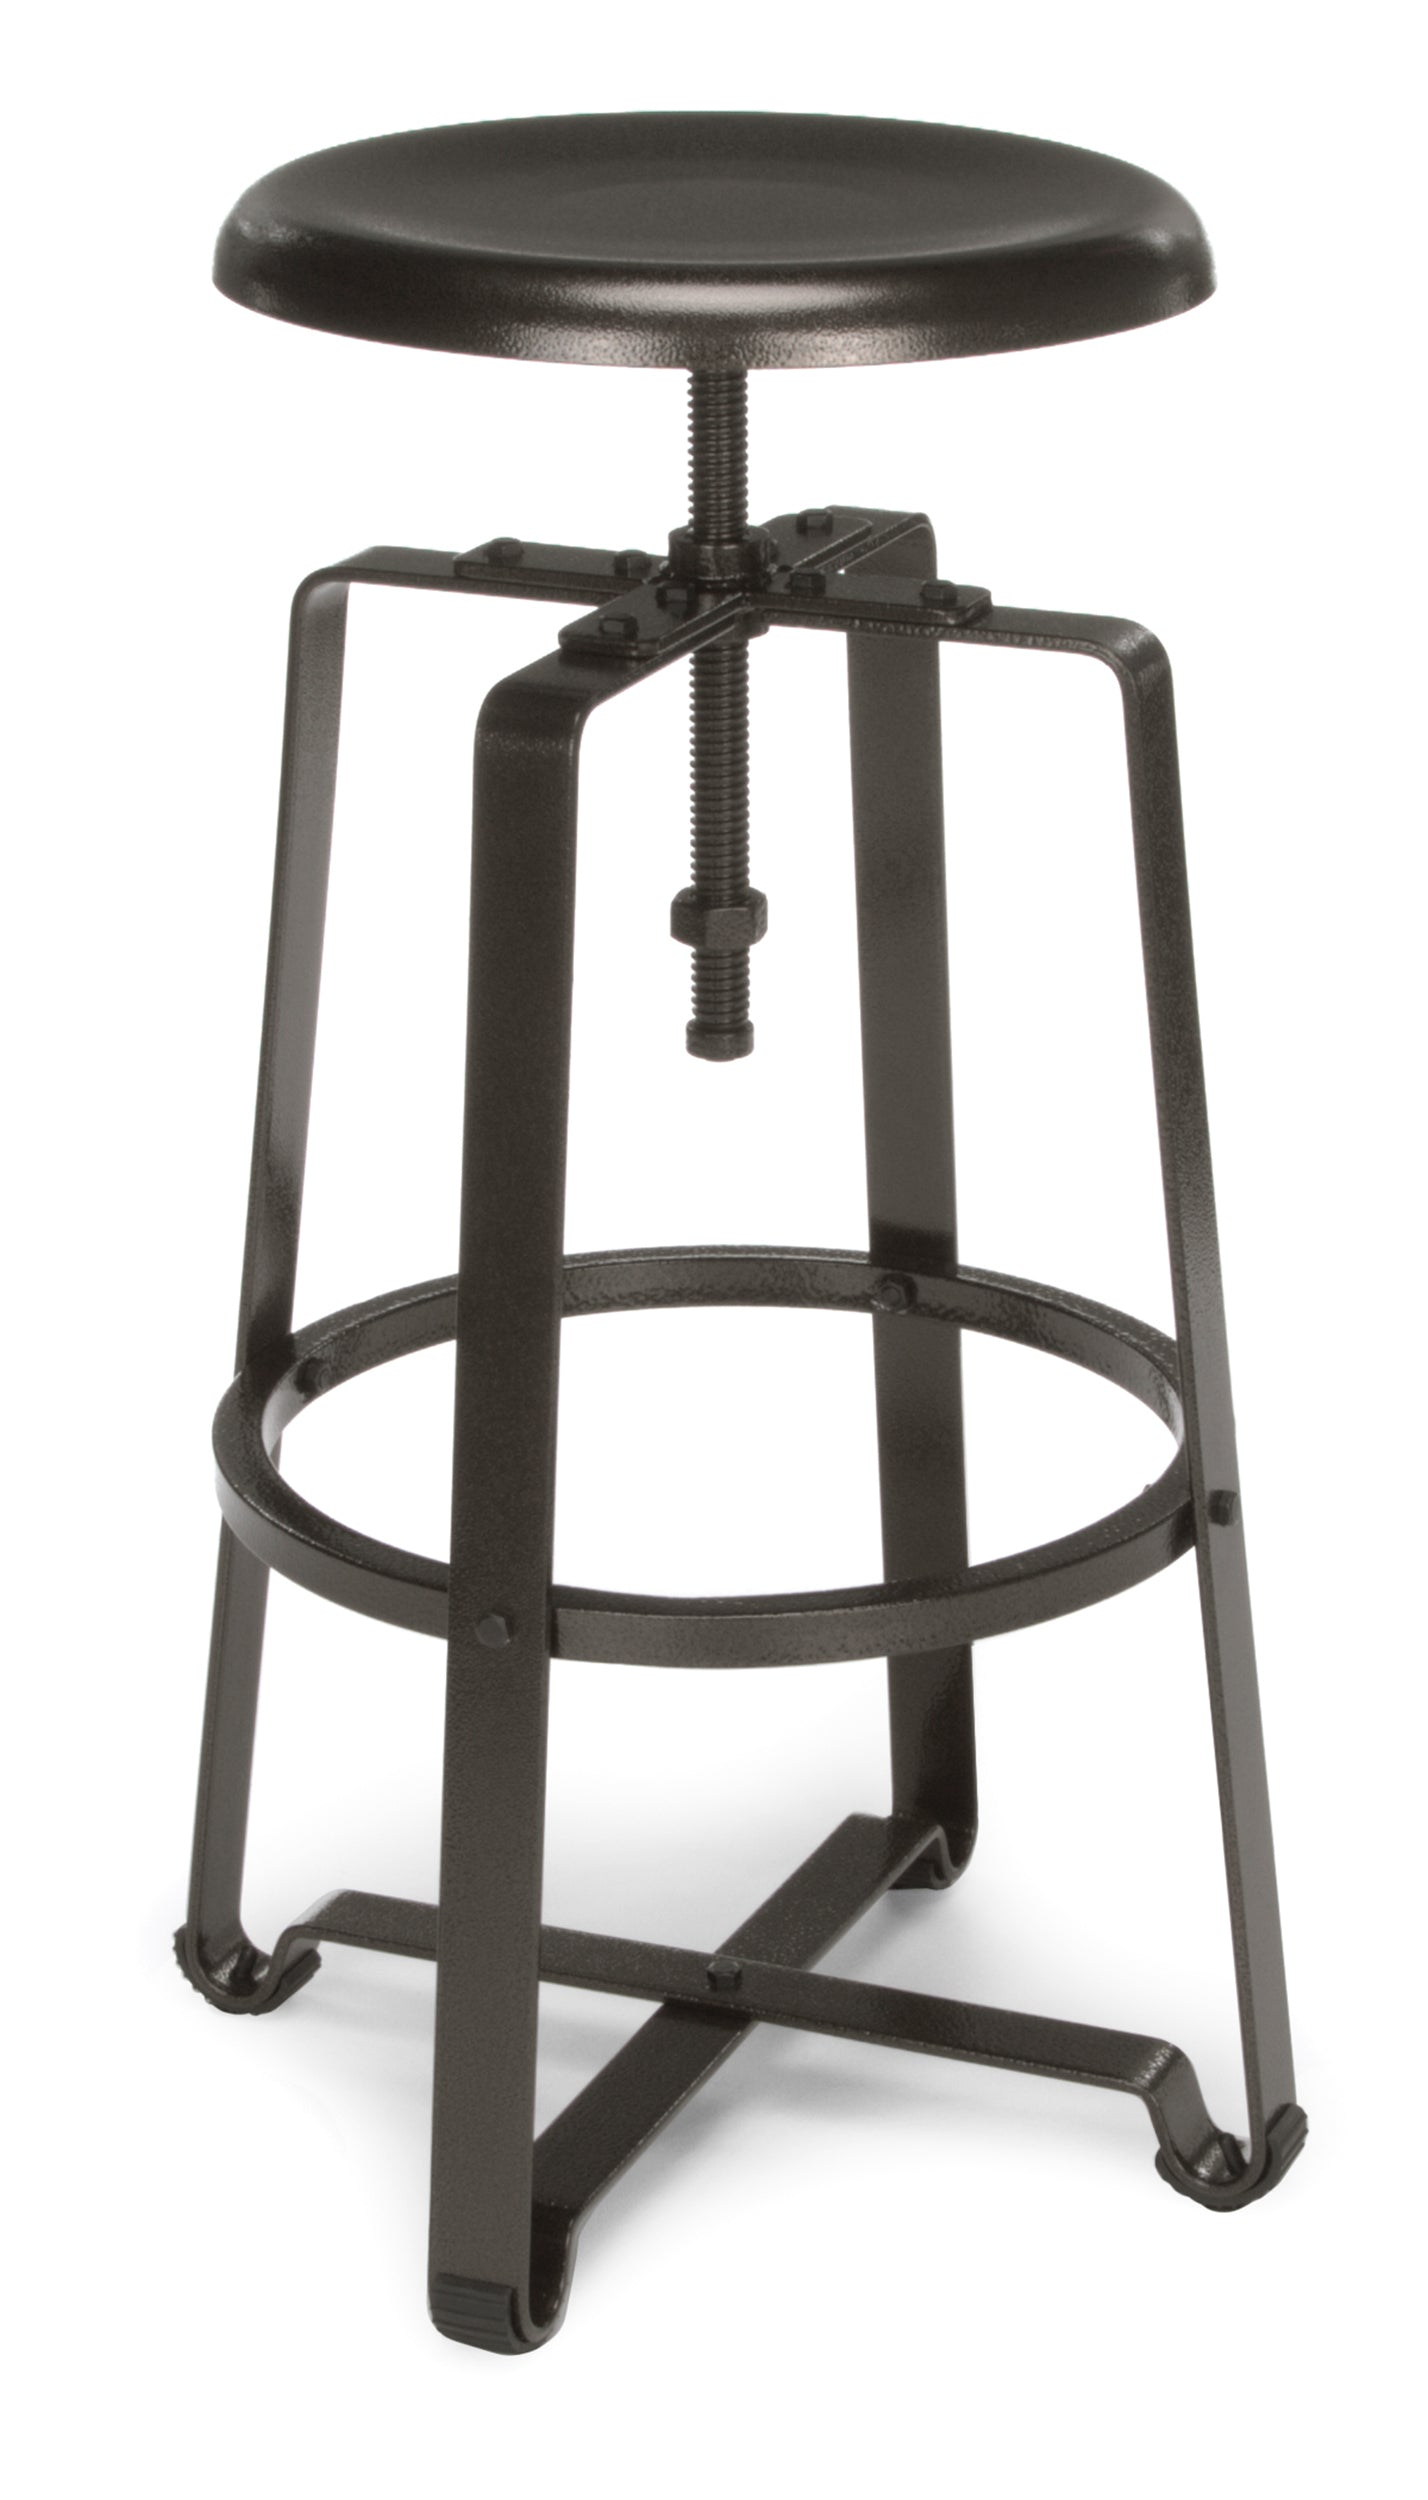 Ofminc Model 920-MTL Endure Series Tall Metal Stool